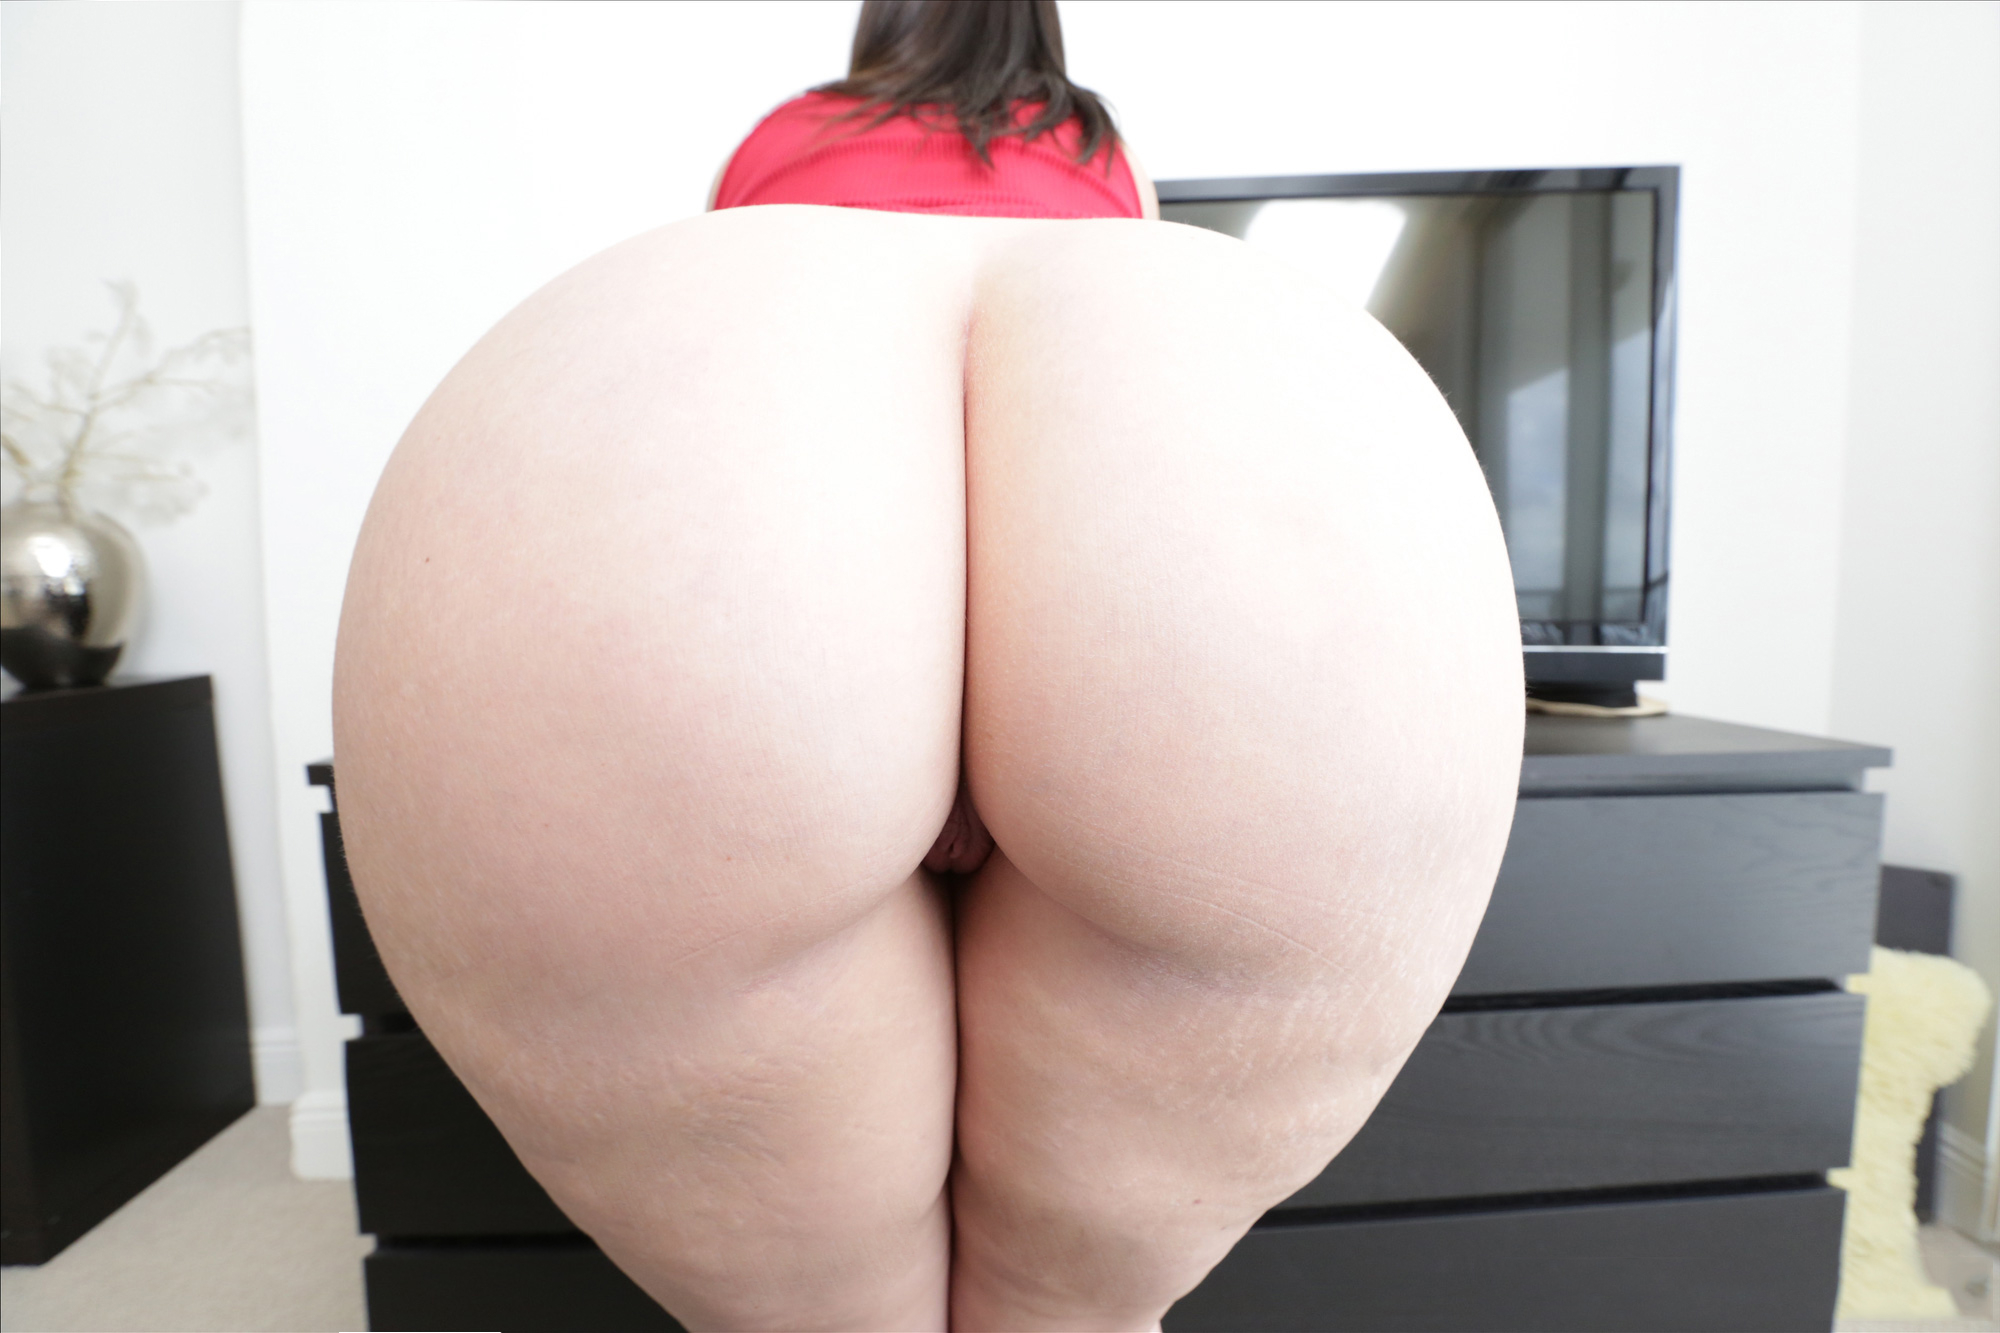 Can white butt porn